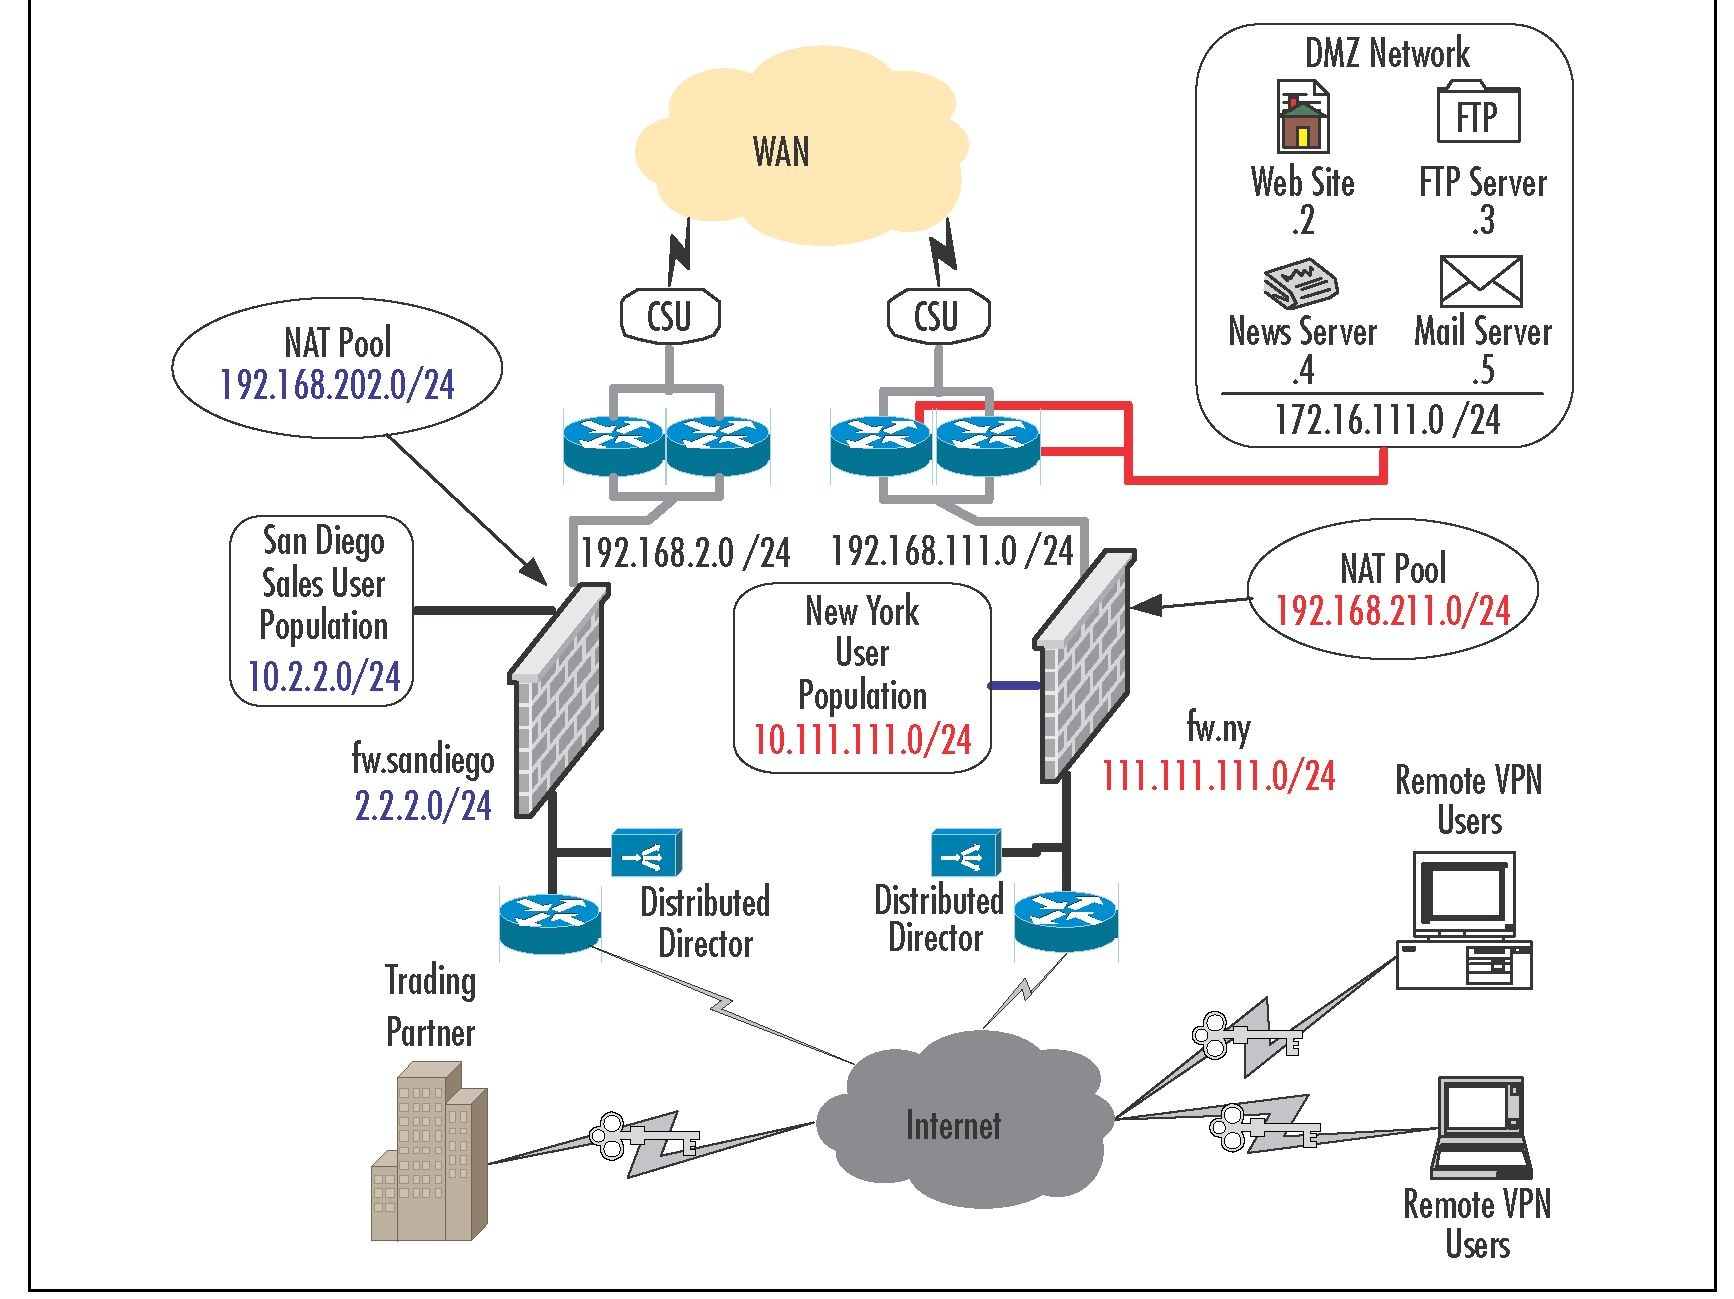 basic concepts of dmz and ids Ids / ips nac dmz gateway proxy honey pot introduction to the internet internet history basic concepts, protocols and services.